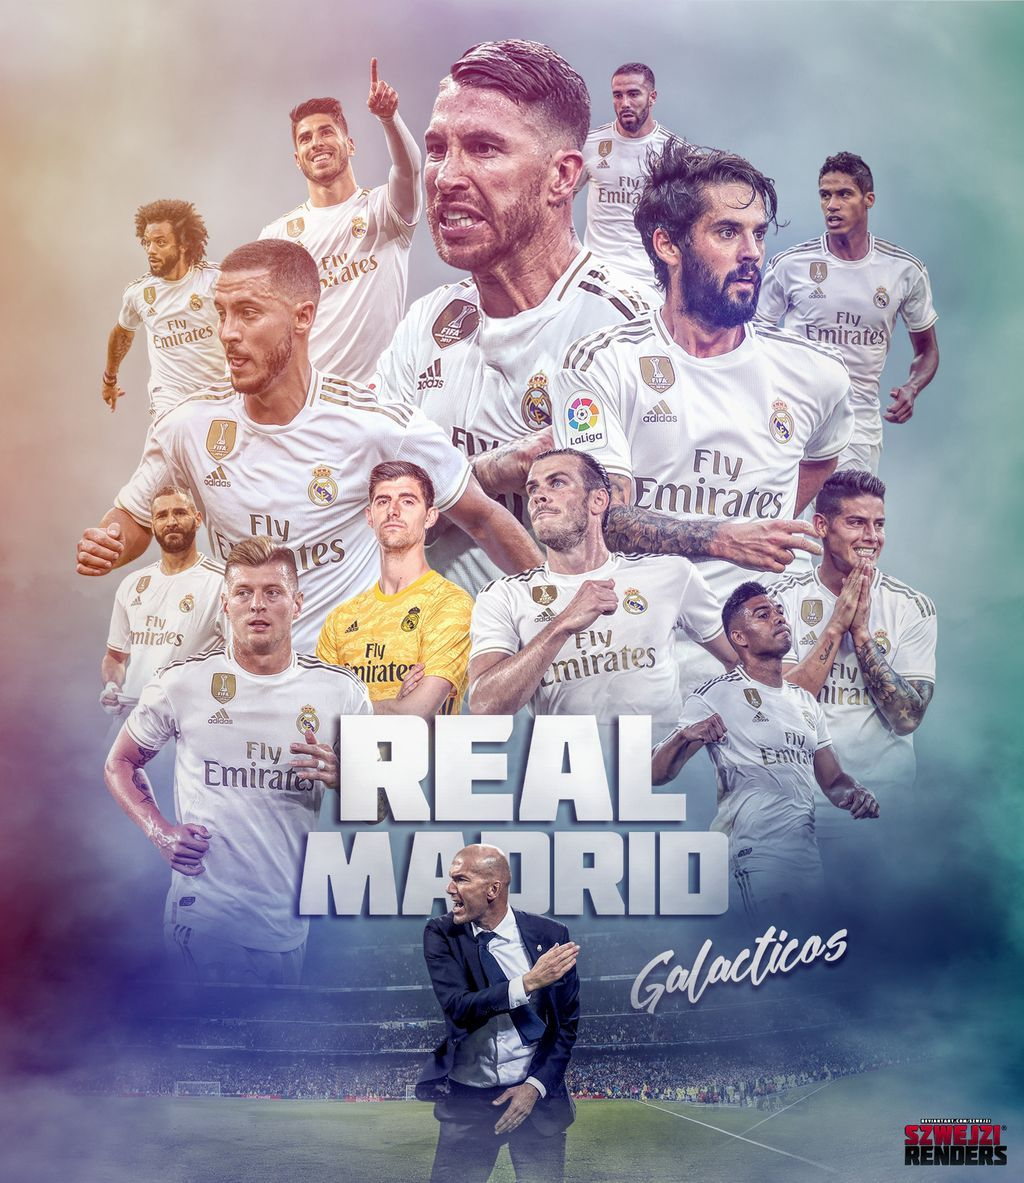 Real Madrid Wallpaper Hd 2019 Hd Football In 2020 Real Madrid Wallpapers Madrid Wallpaper Real Madrid Team